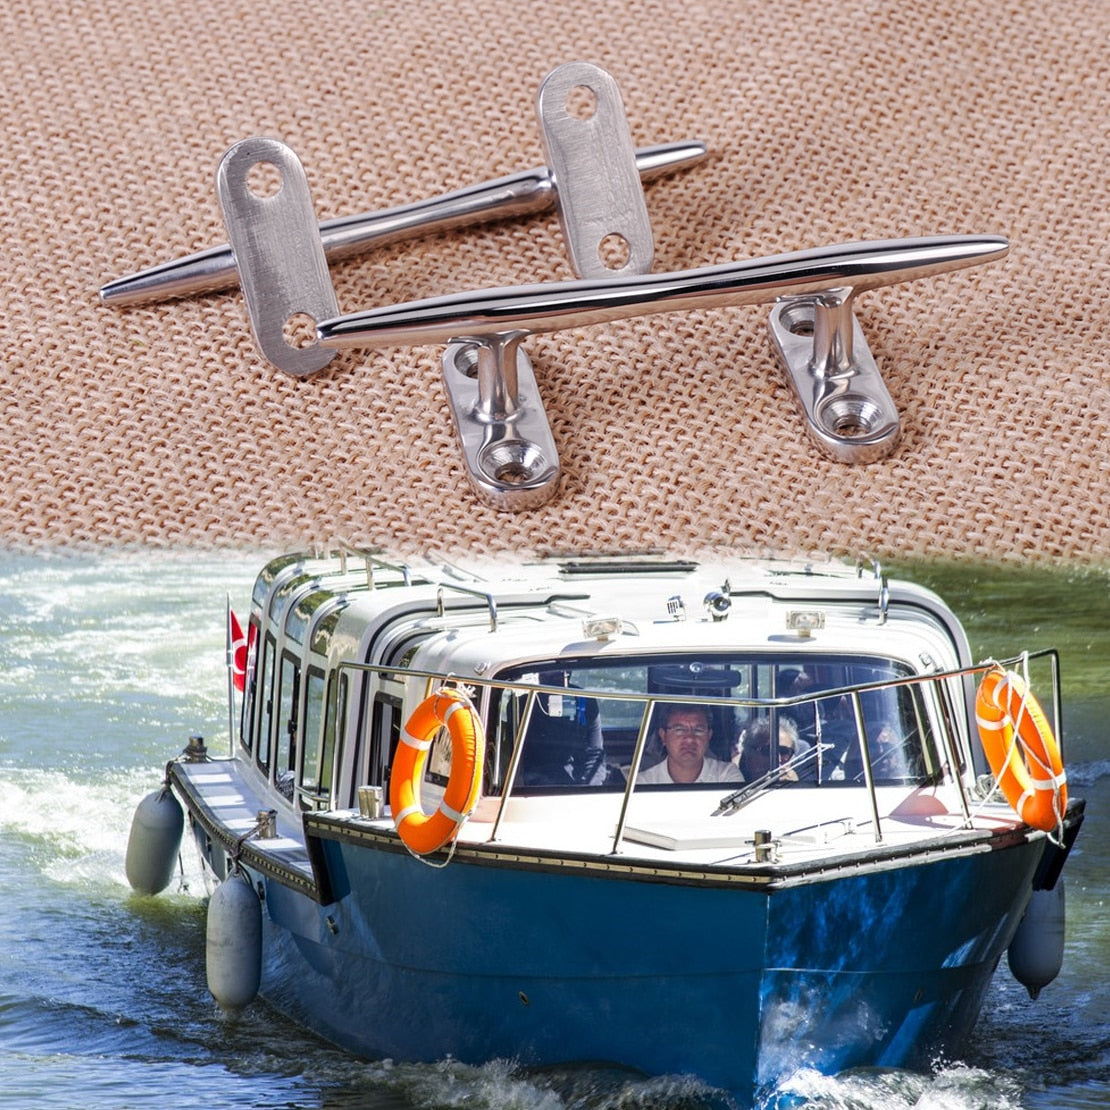 2PCS Stainless Steel Dock Deck Line Rope Cleat Tie Boat Yacht Marine Hardware Latch